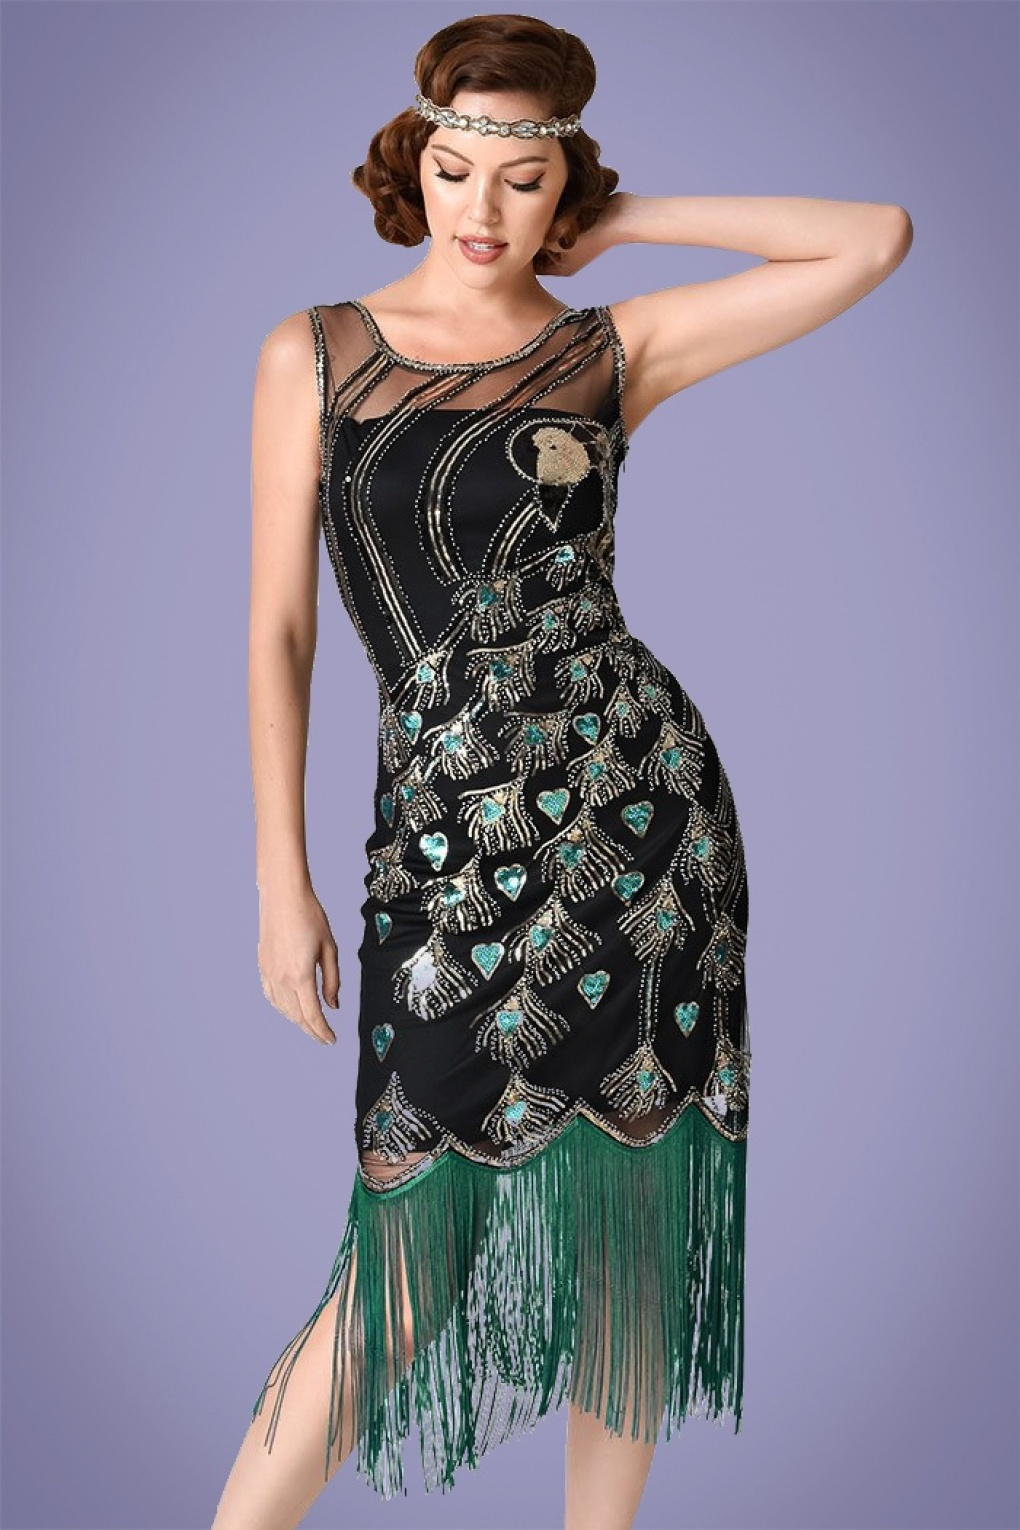 1920s Style Dresses, Flapper Dresses 20s Antoinette Beaded Peacock Flapper Dress in Black and Green £114.81 AT vintagedancer.com